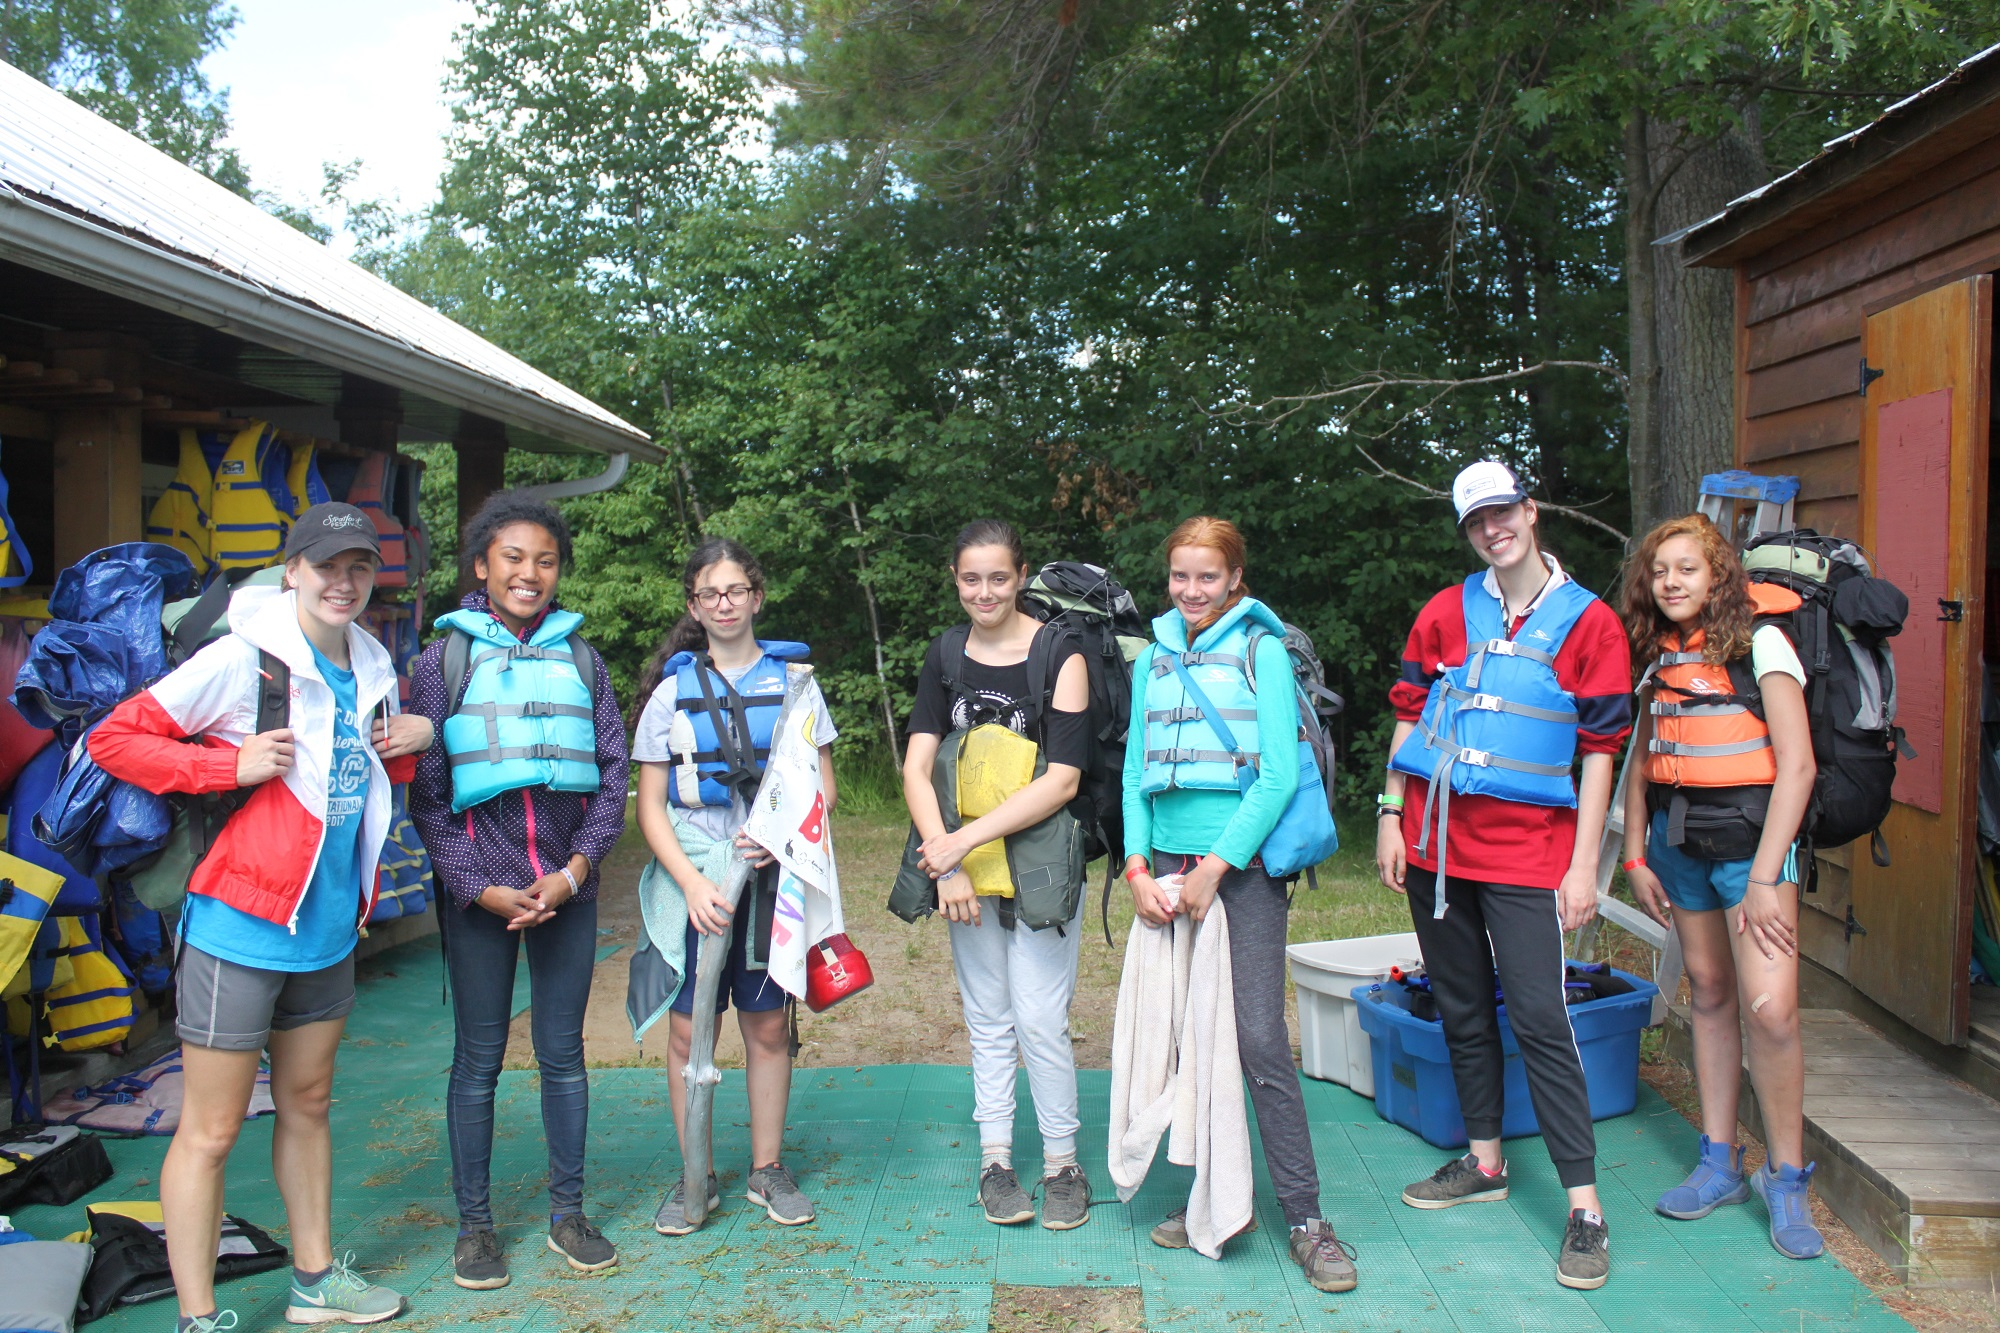 camp checklist - what to pack!